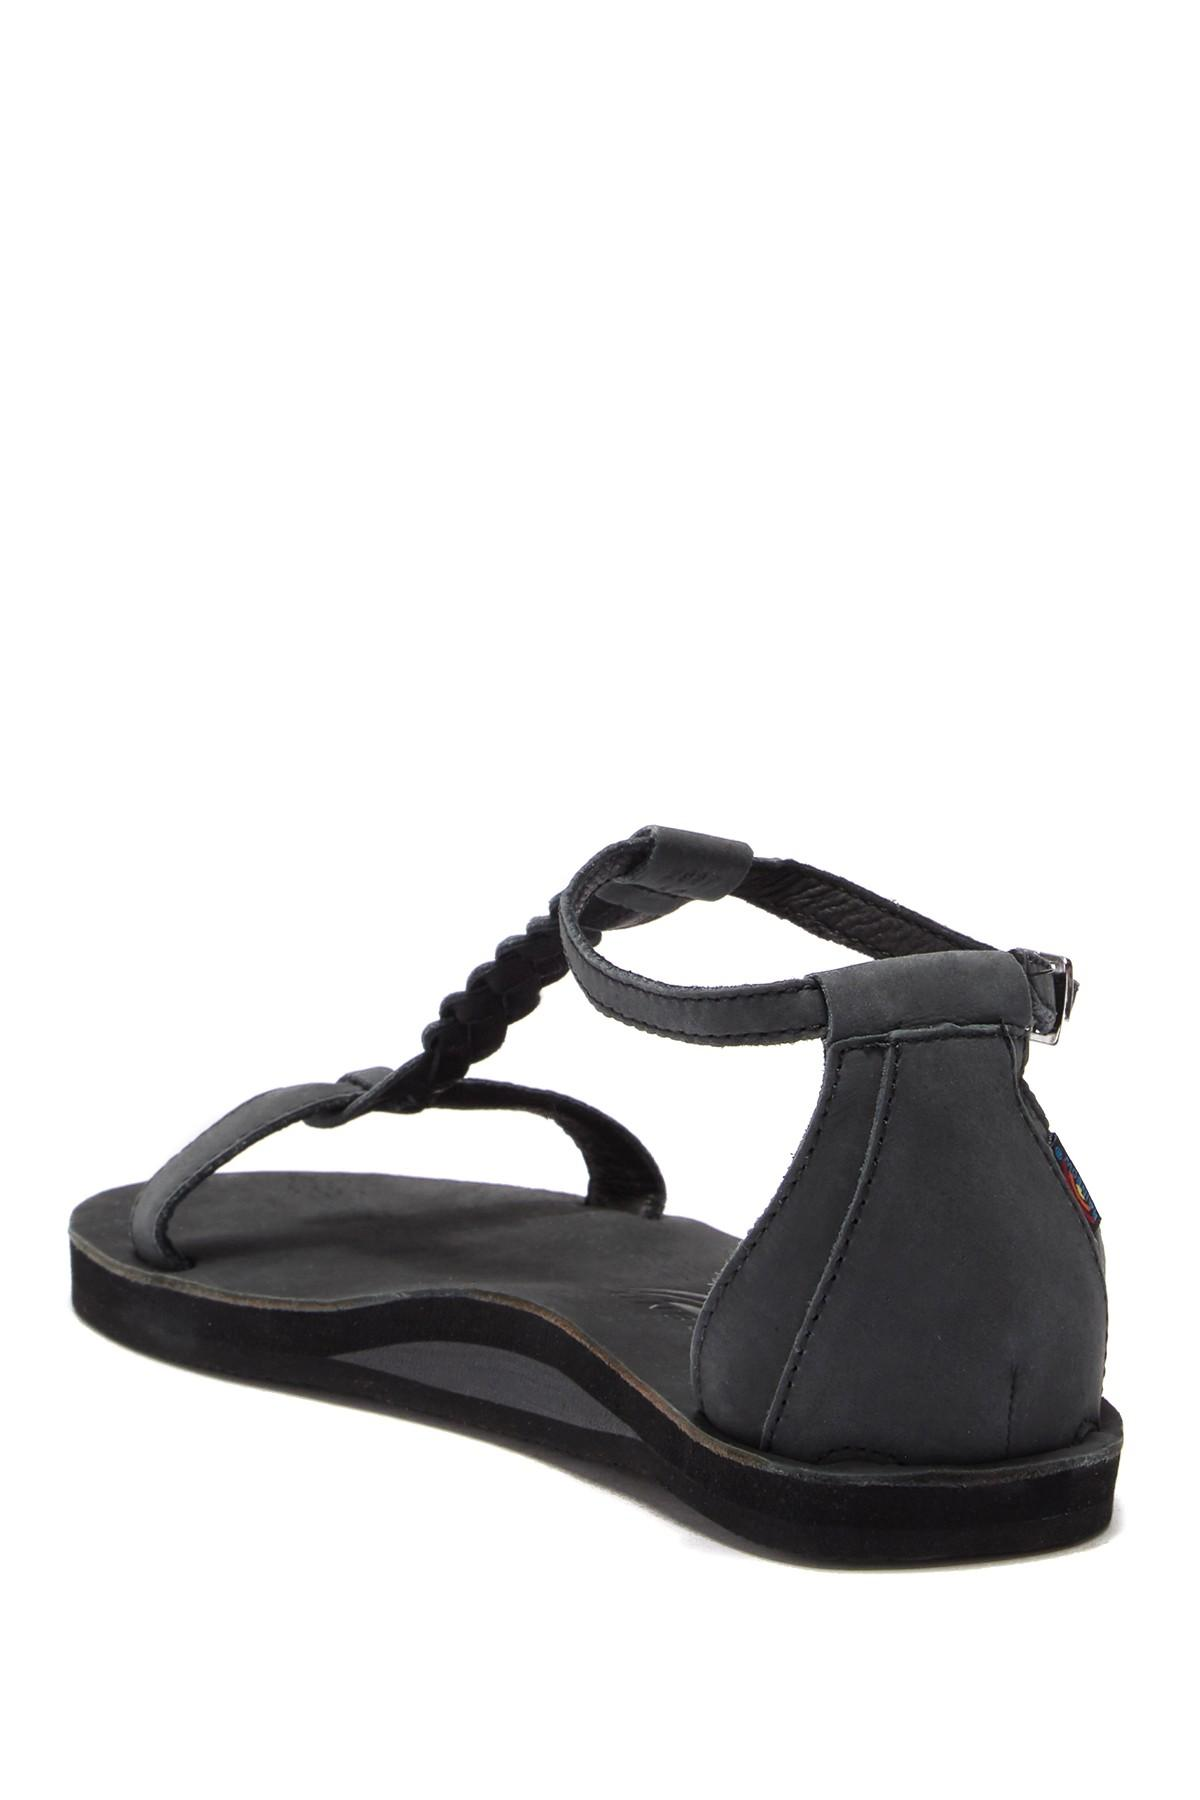 9c2fb32a11b Rainbow Sandals - Black Calafia Single Layer Center Braid Heel - Lyst. View  fullscreen